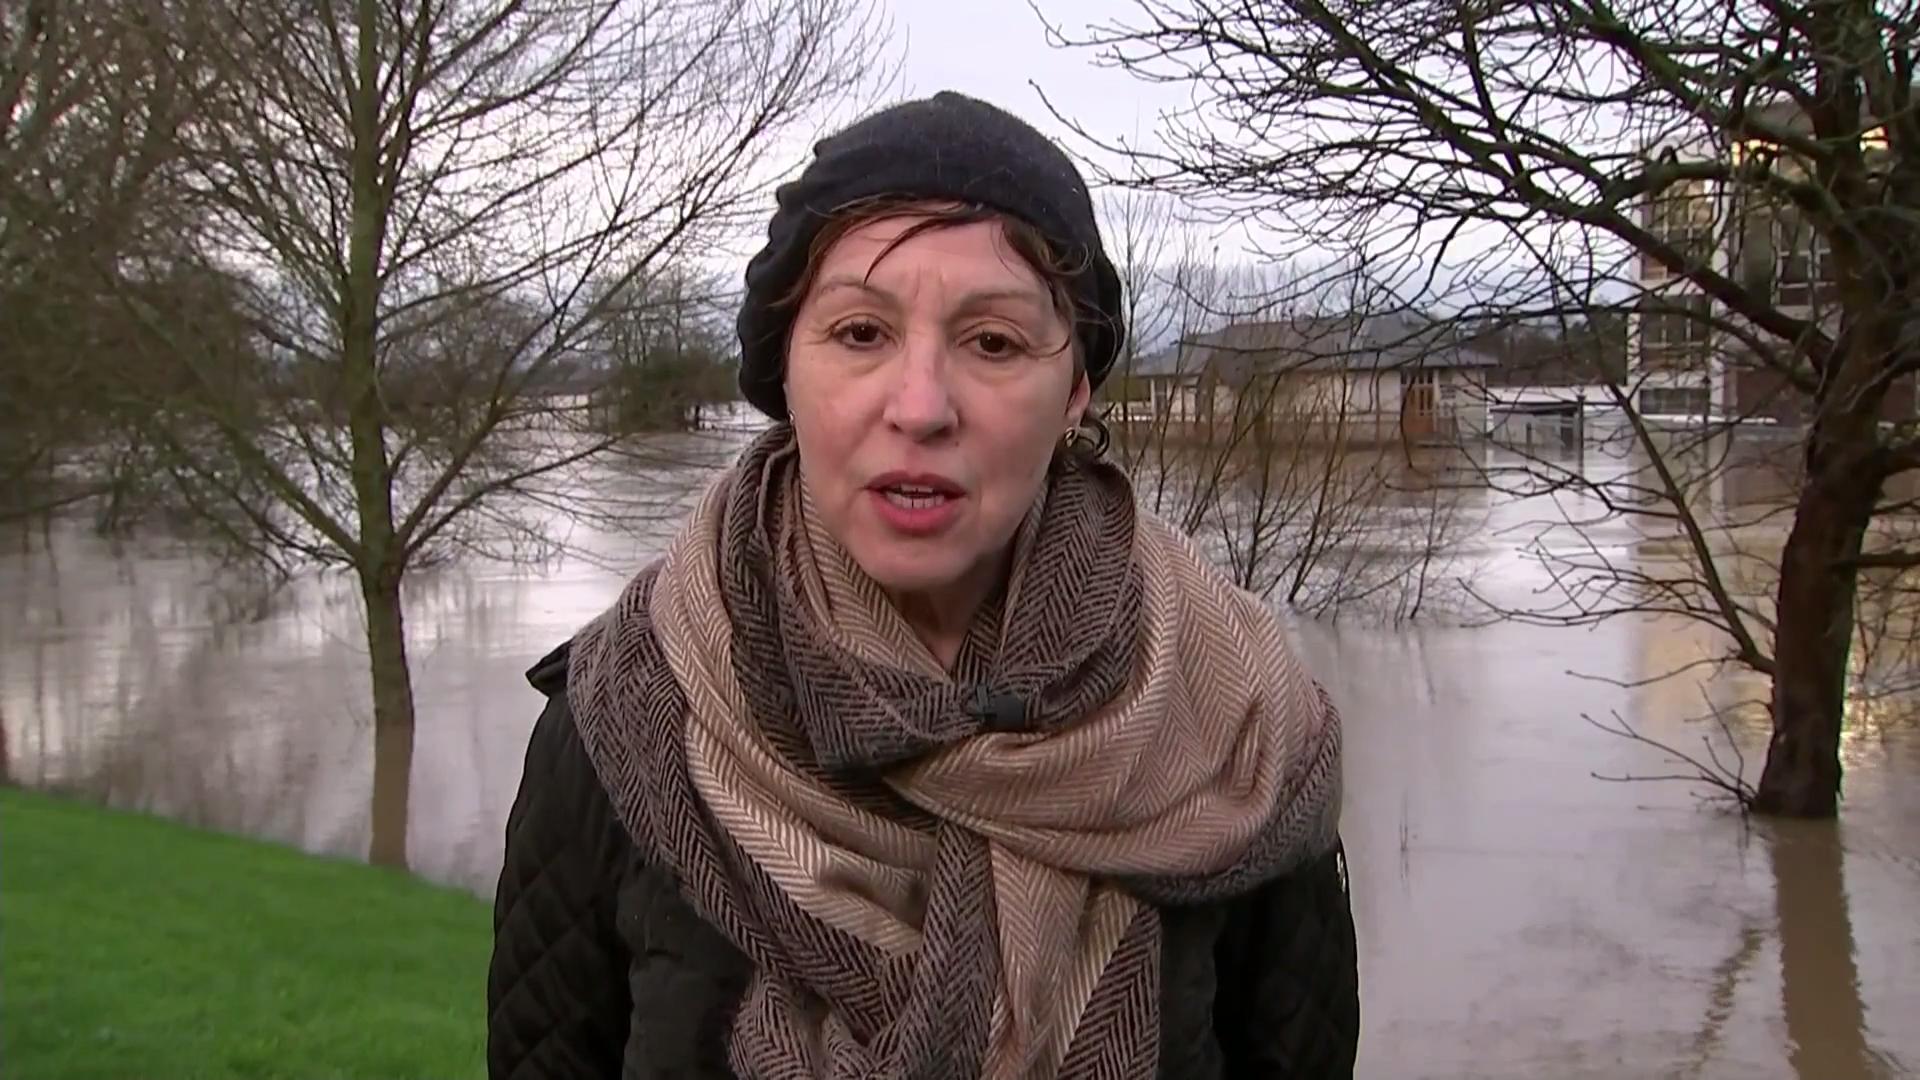 'More homes would have been flooded if it wasn't for investment put in' – Environment Minister Rebecca Pow - channel 4